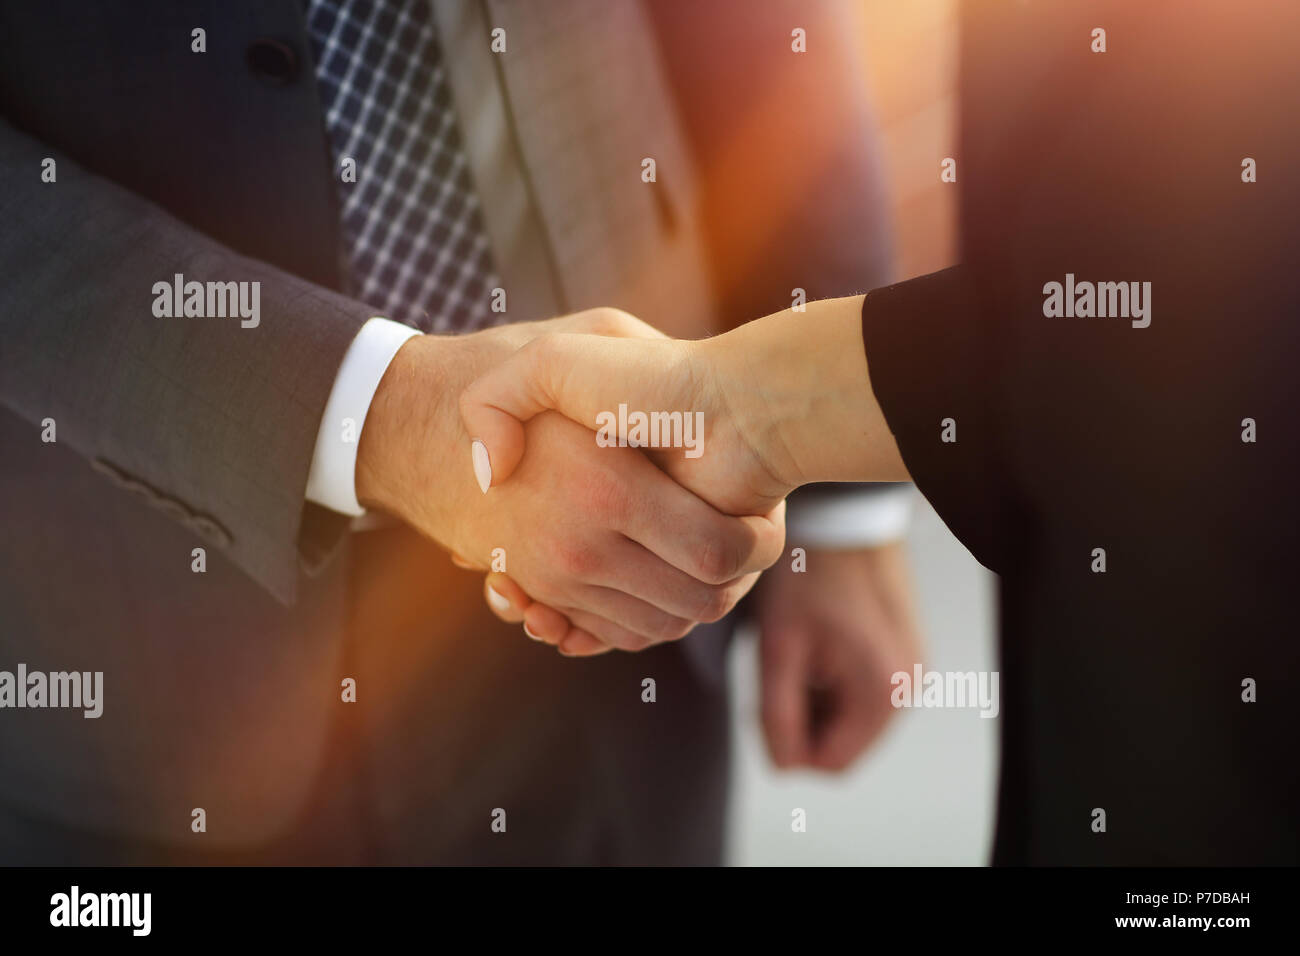 Business executives to congratulate the joint business agreement - Stock Image